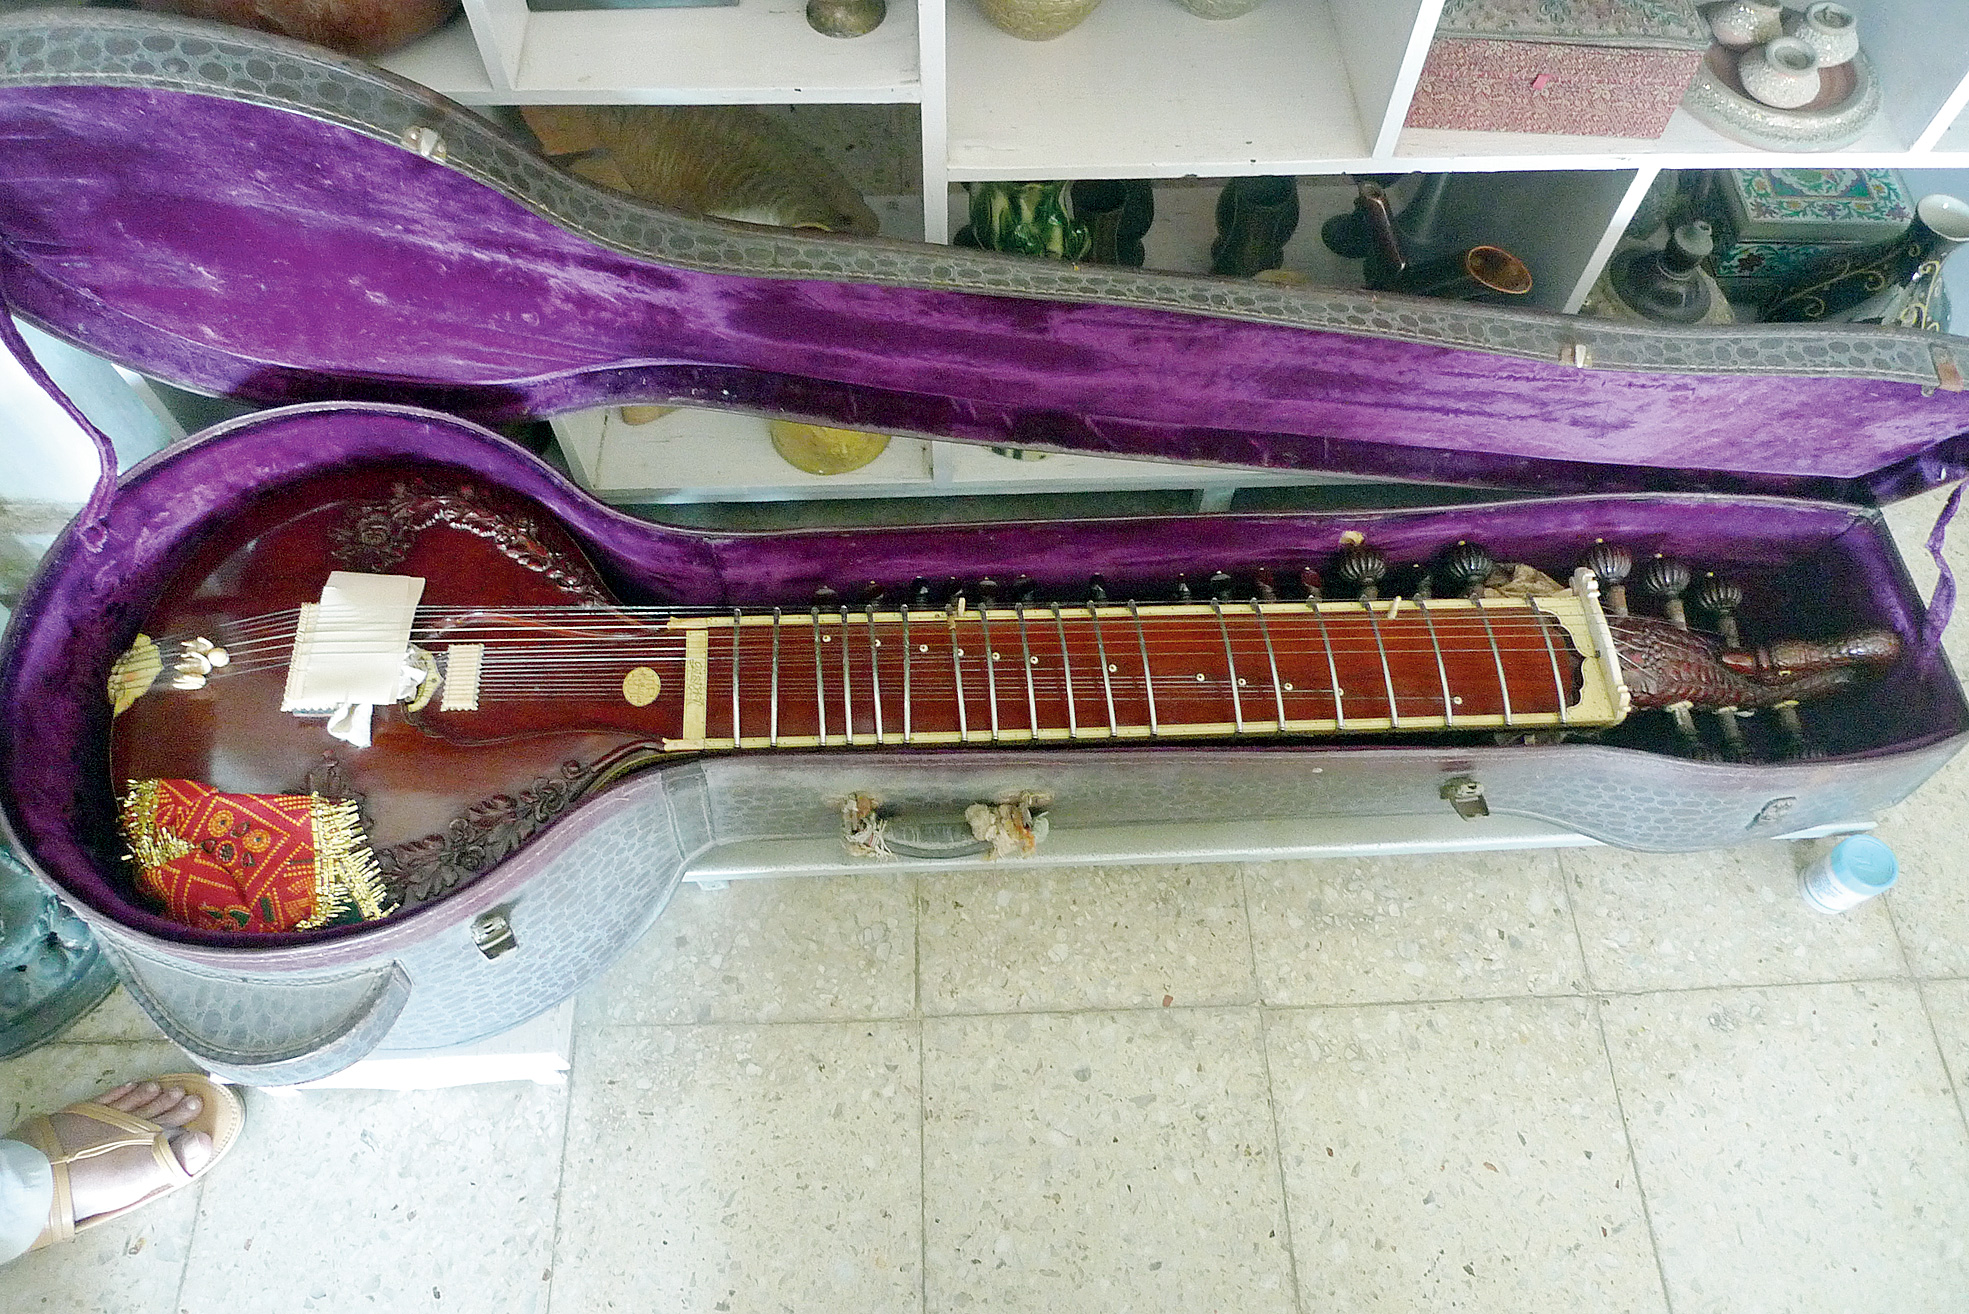 "The surbahar (bass sitar) played by Annapurna Devi at her home on Warden Road in Malabar Hill, Mumbai. This instrument was made by Pandit Ravi Shankar's personal sitar maker Nodu Mullick in 1951 and has ""Annapurna"" inscribed on it in Bengali. Sitar player Shubhendra Rao, a disciple of Pandit Ravi Shankar, said on Saturday: ""In the 1950s, my guruji had hired Mullick to make and maintain only his sitar and surbahar. He also used to travel across the globe with my guruji and play tanpura on the stage with him. So, apart from my guruji's instruments, Annapurna Devi's surbahar may be the only one ever made by Mullick, which makes it a rarity."" Annapurna Devi's last public concert was in 1956."